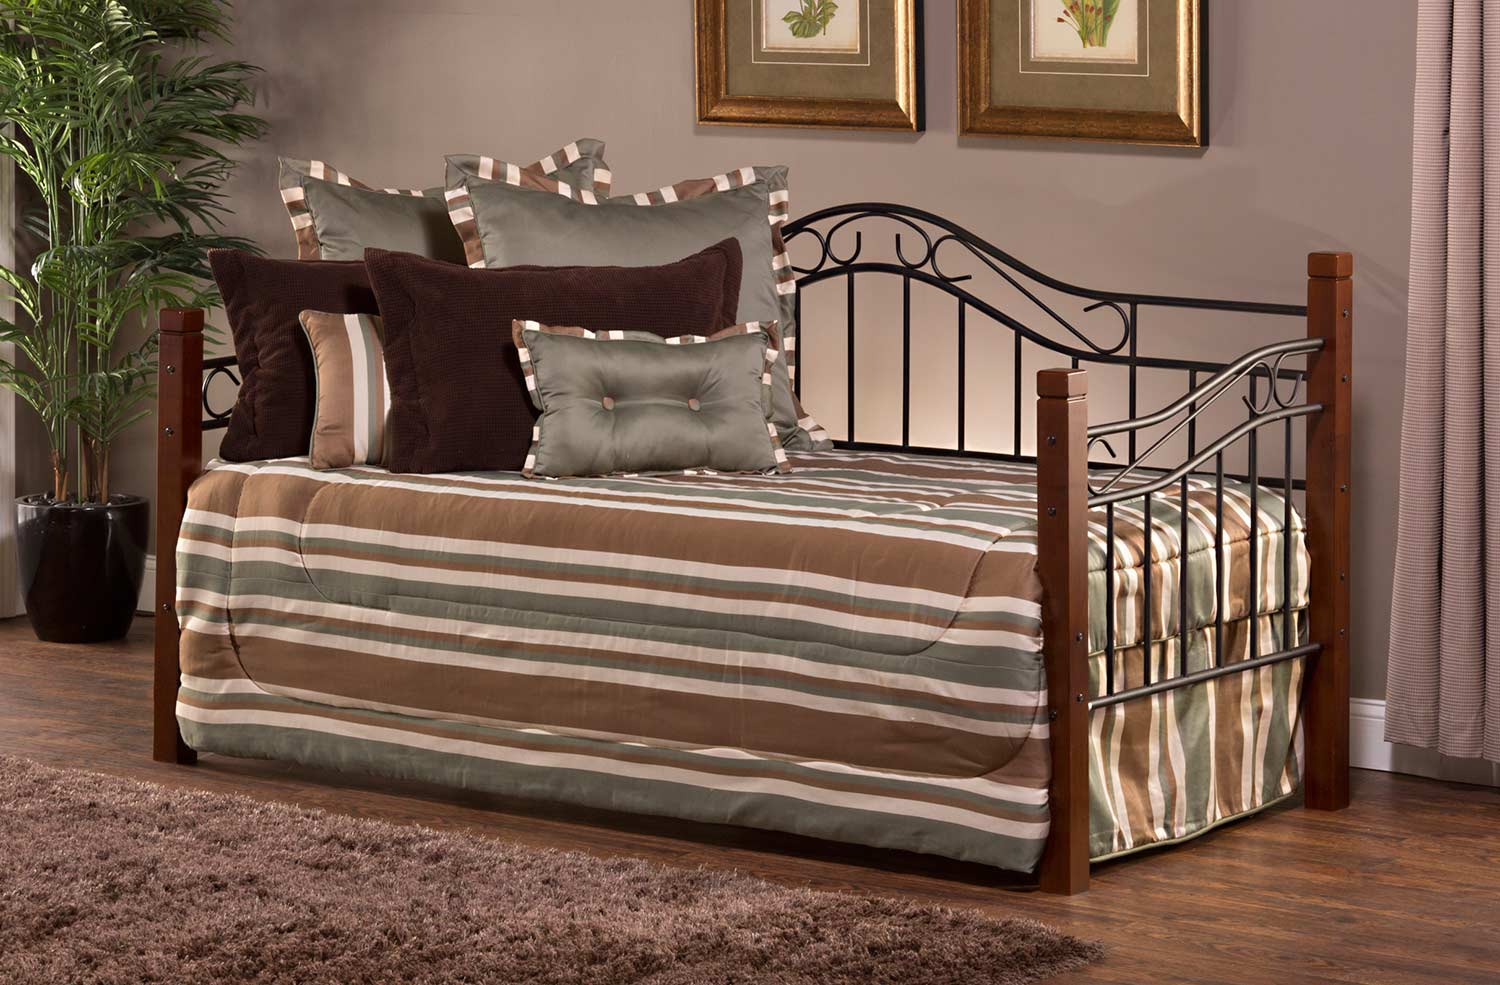 Hillsdale Matson Daybed with Suspension Deck - Cherry/Black